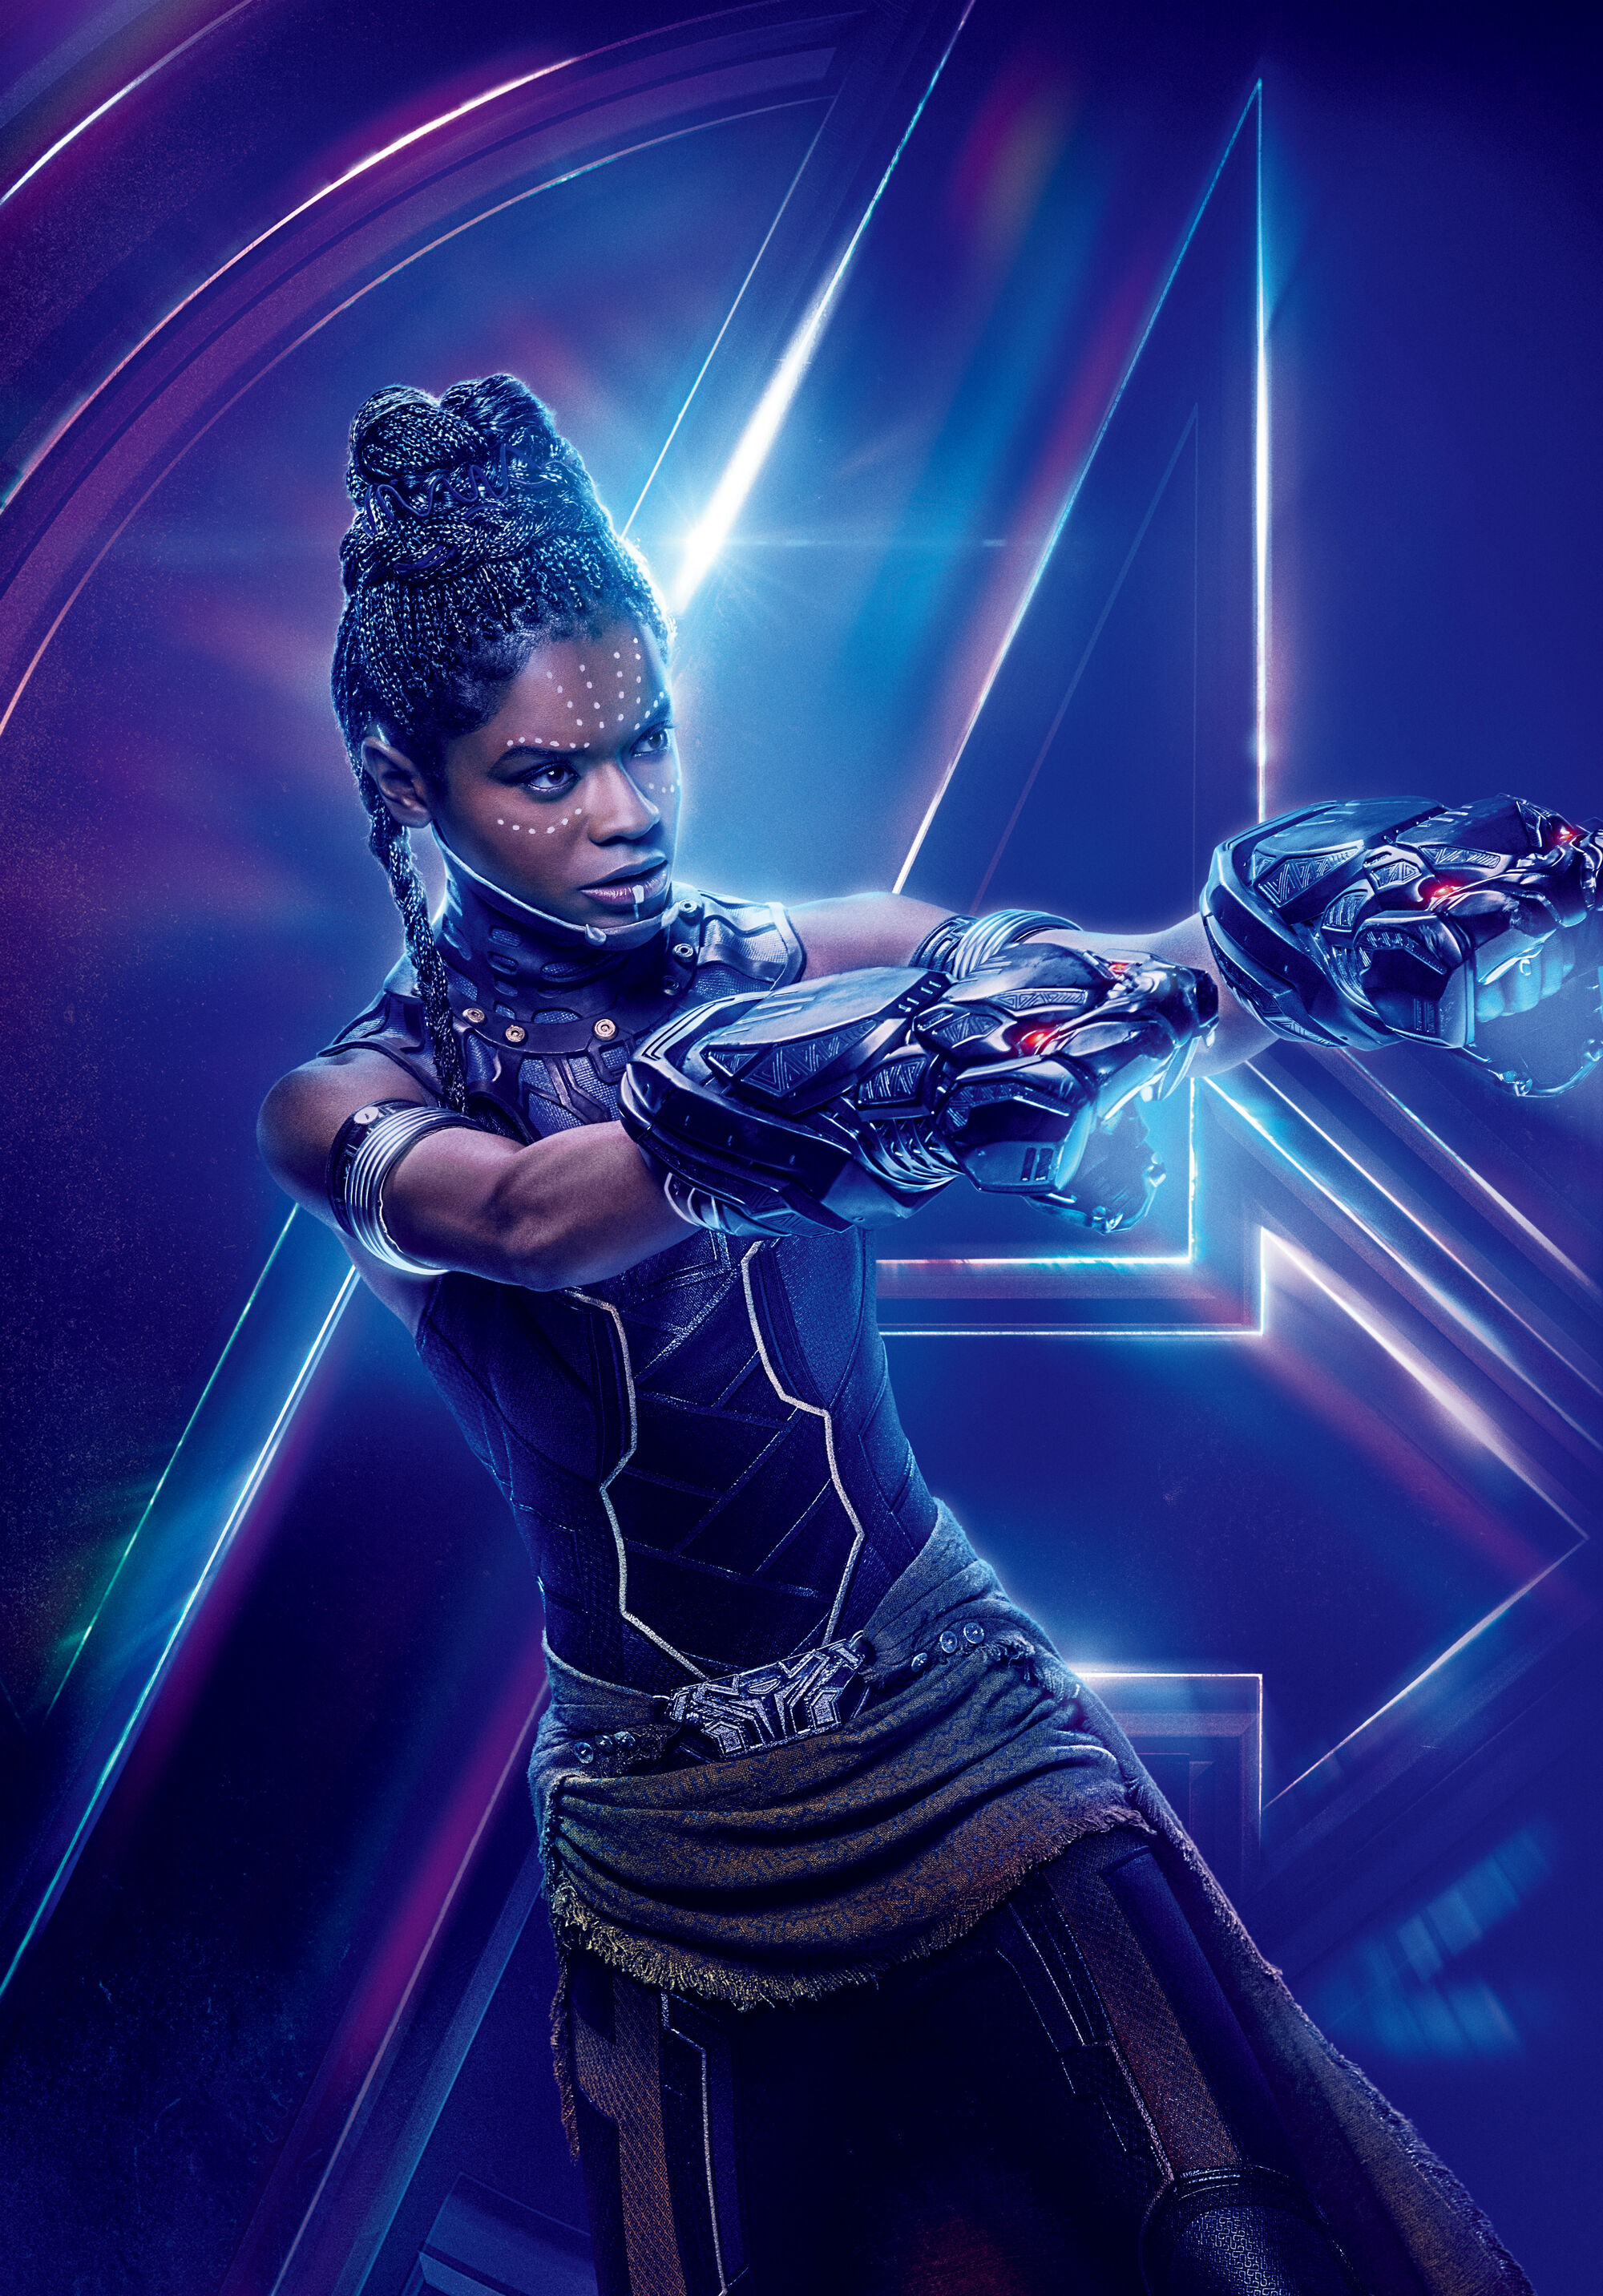 Shuri | Marvel Cinematic Universe Wiki | FANDOM powered by Wikia